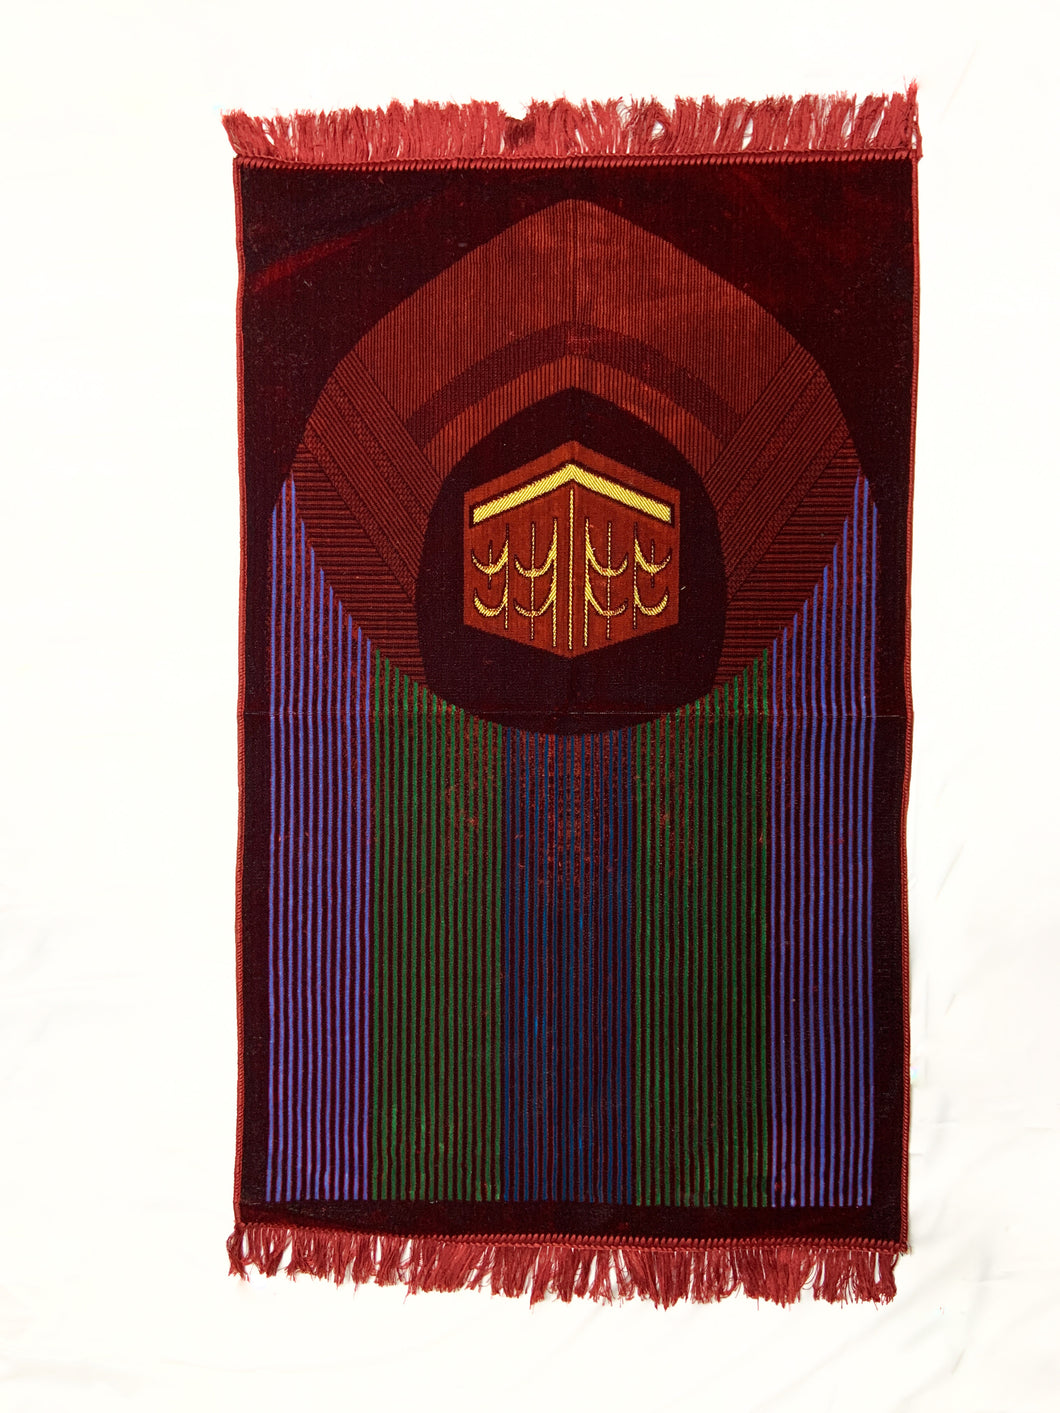 Al Arabia Muslim Prayer Rug - Made from Embossed Velvet - Features Kaaba Stripe Design Red - MuslimPrayerRug